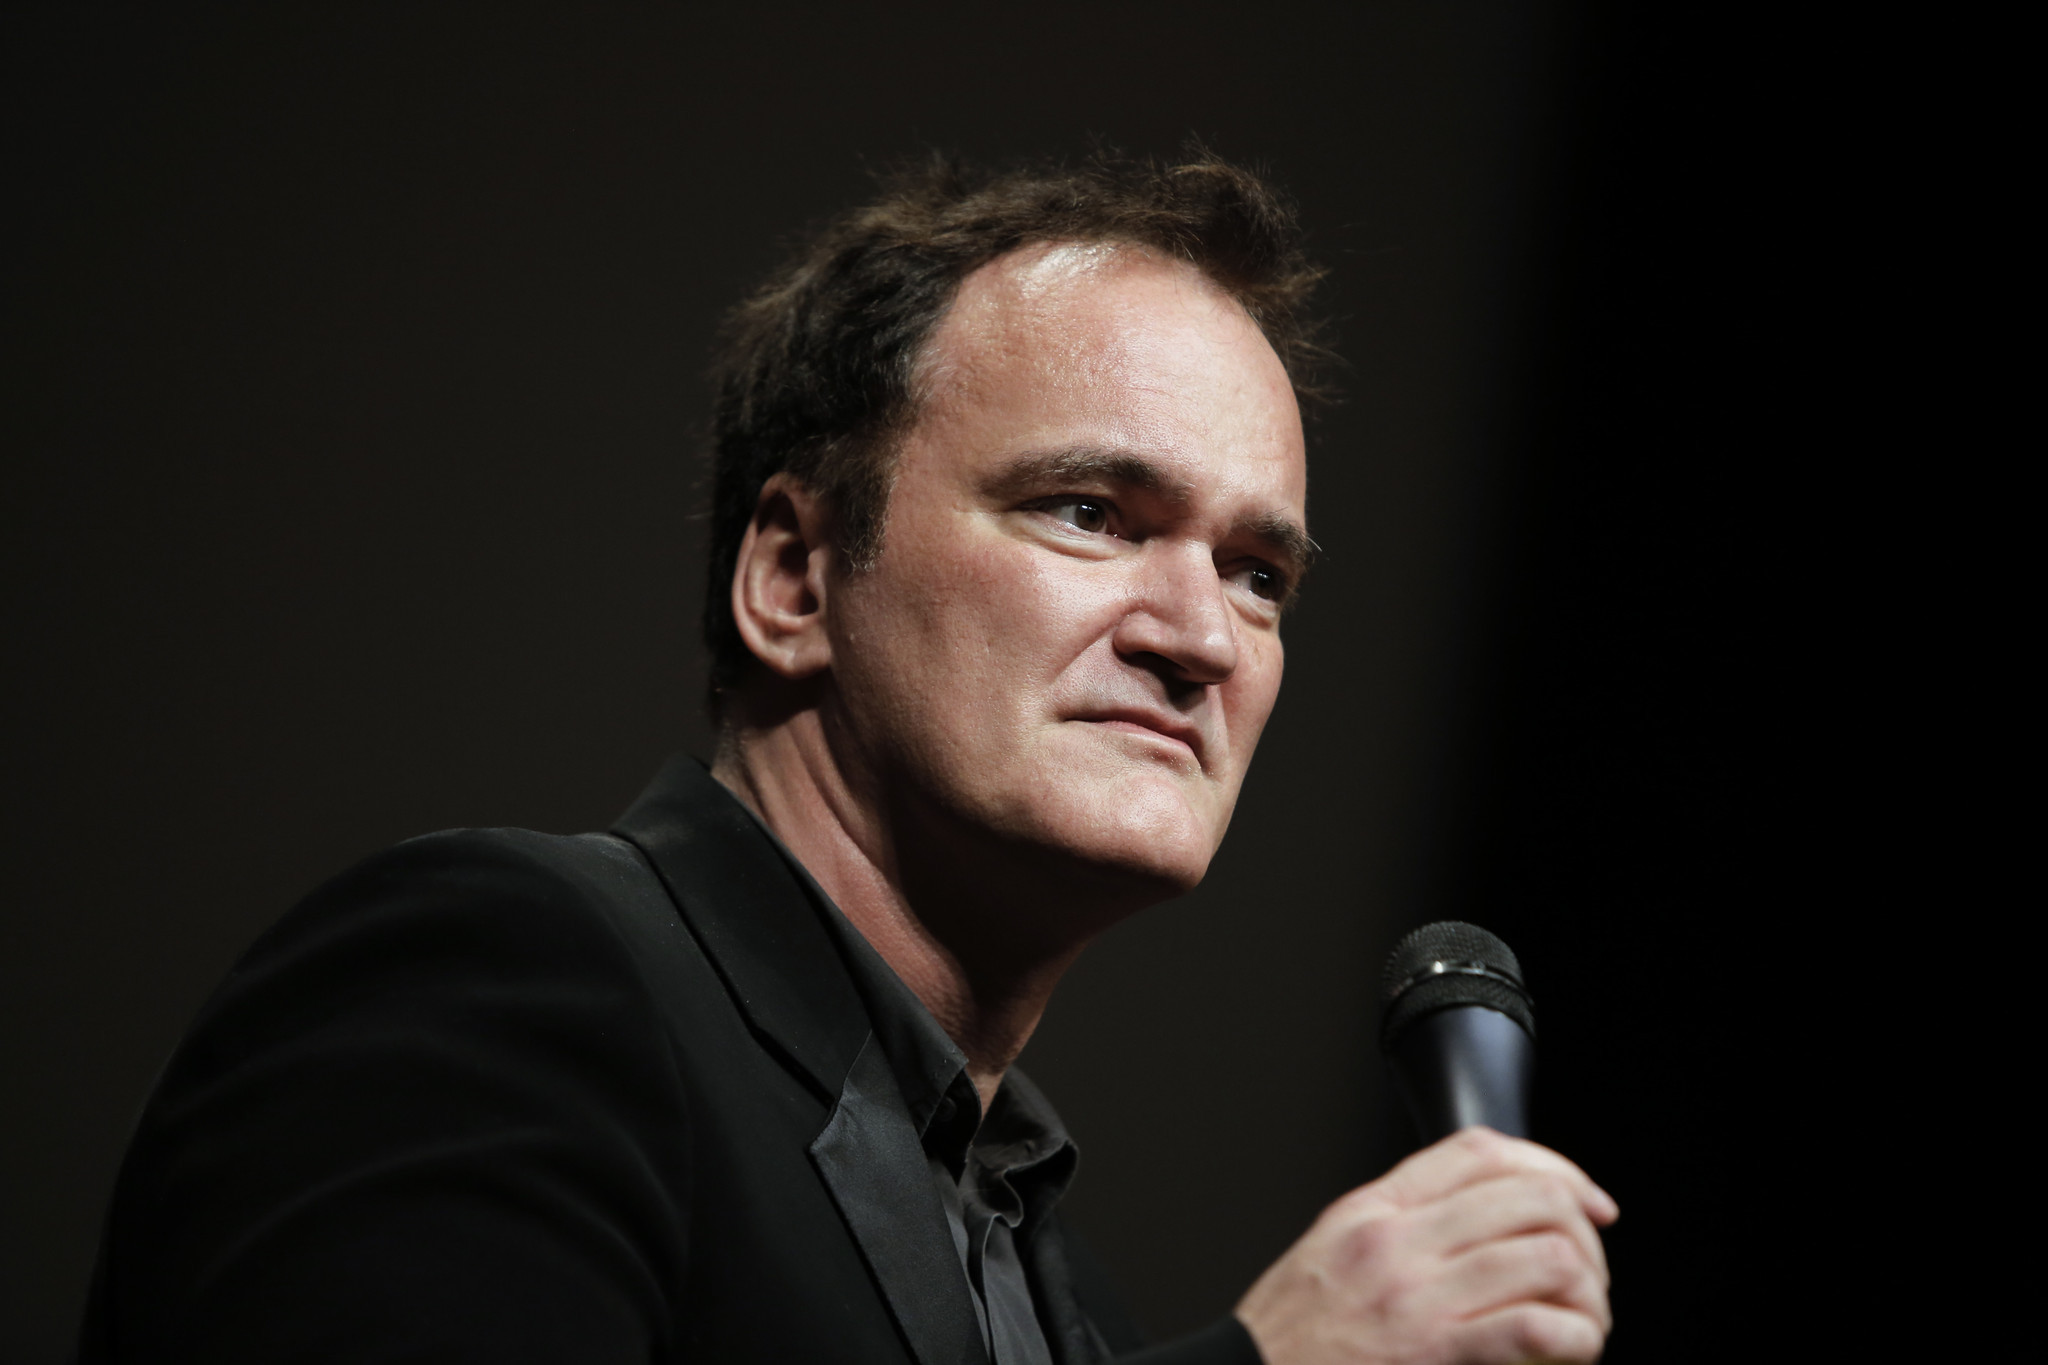 Quentin Tarantino's Next Movie will be Based on the Manson Murders